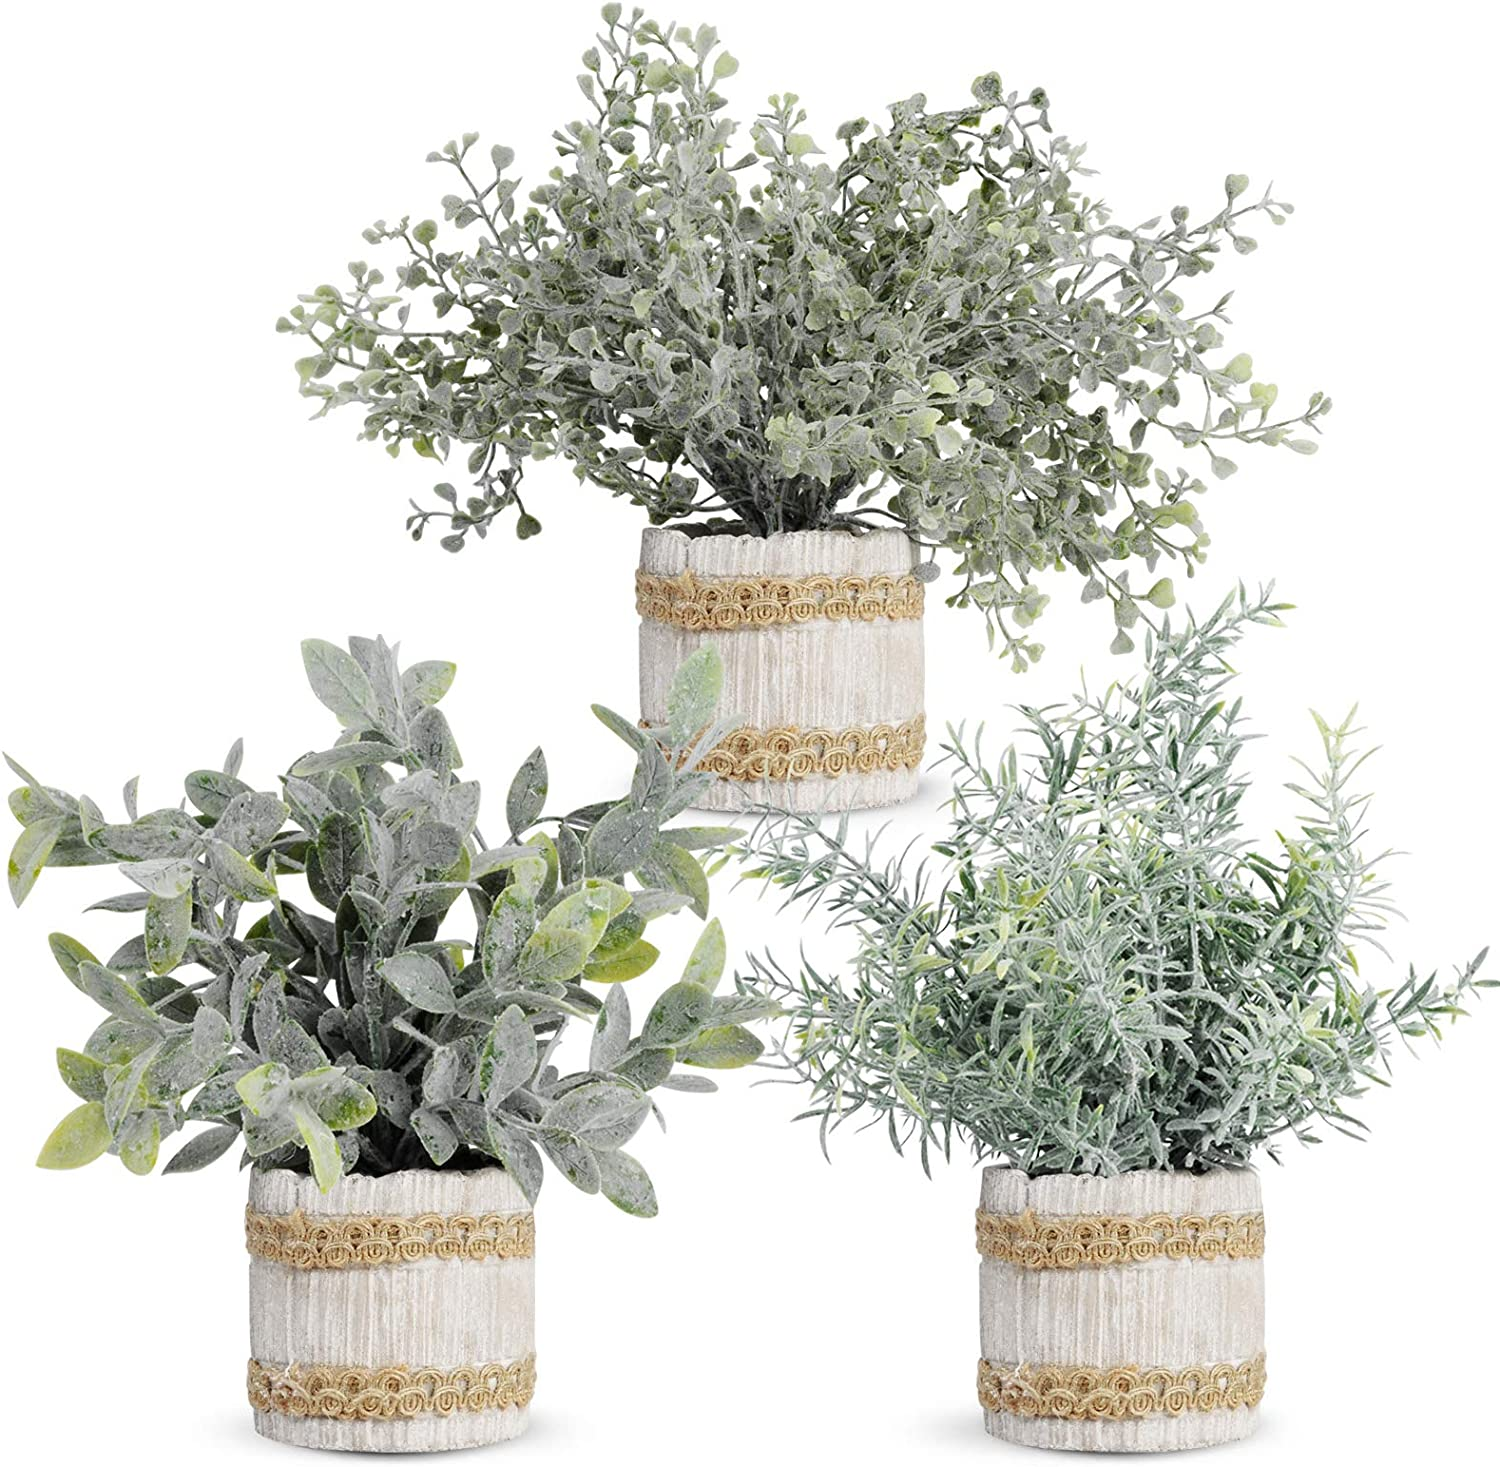 JC nateva 3 Packs Small Fake Plants Mini Artificial Potted Plants Faux Plants Indoor for Home Office Farmhouse Kitchen Bathroom Table Decor